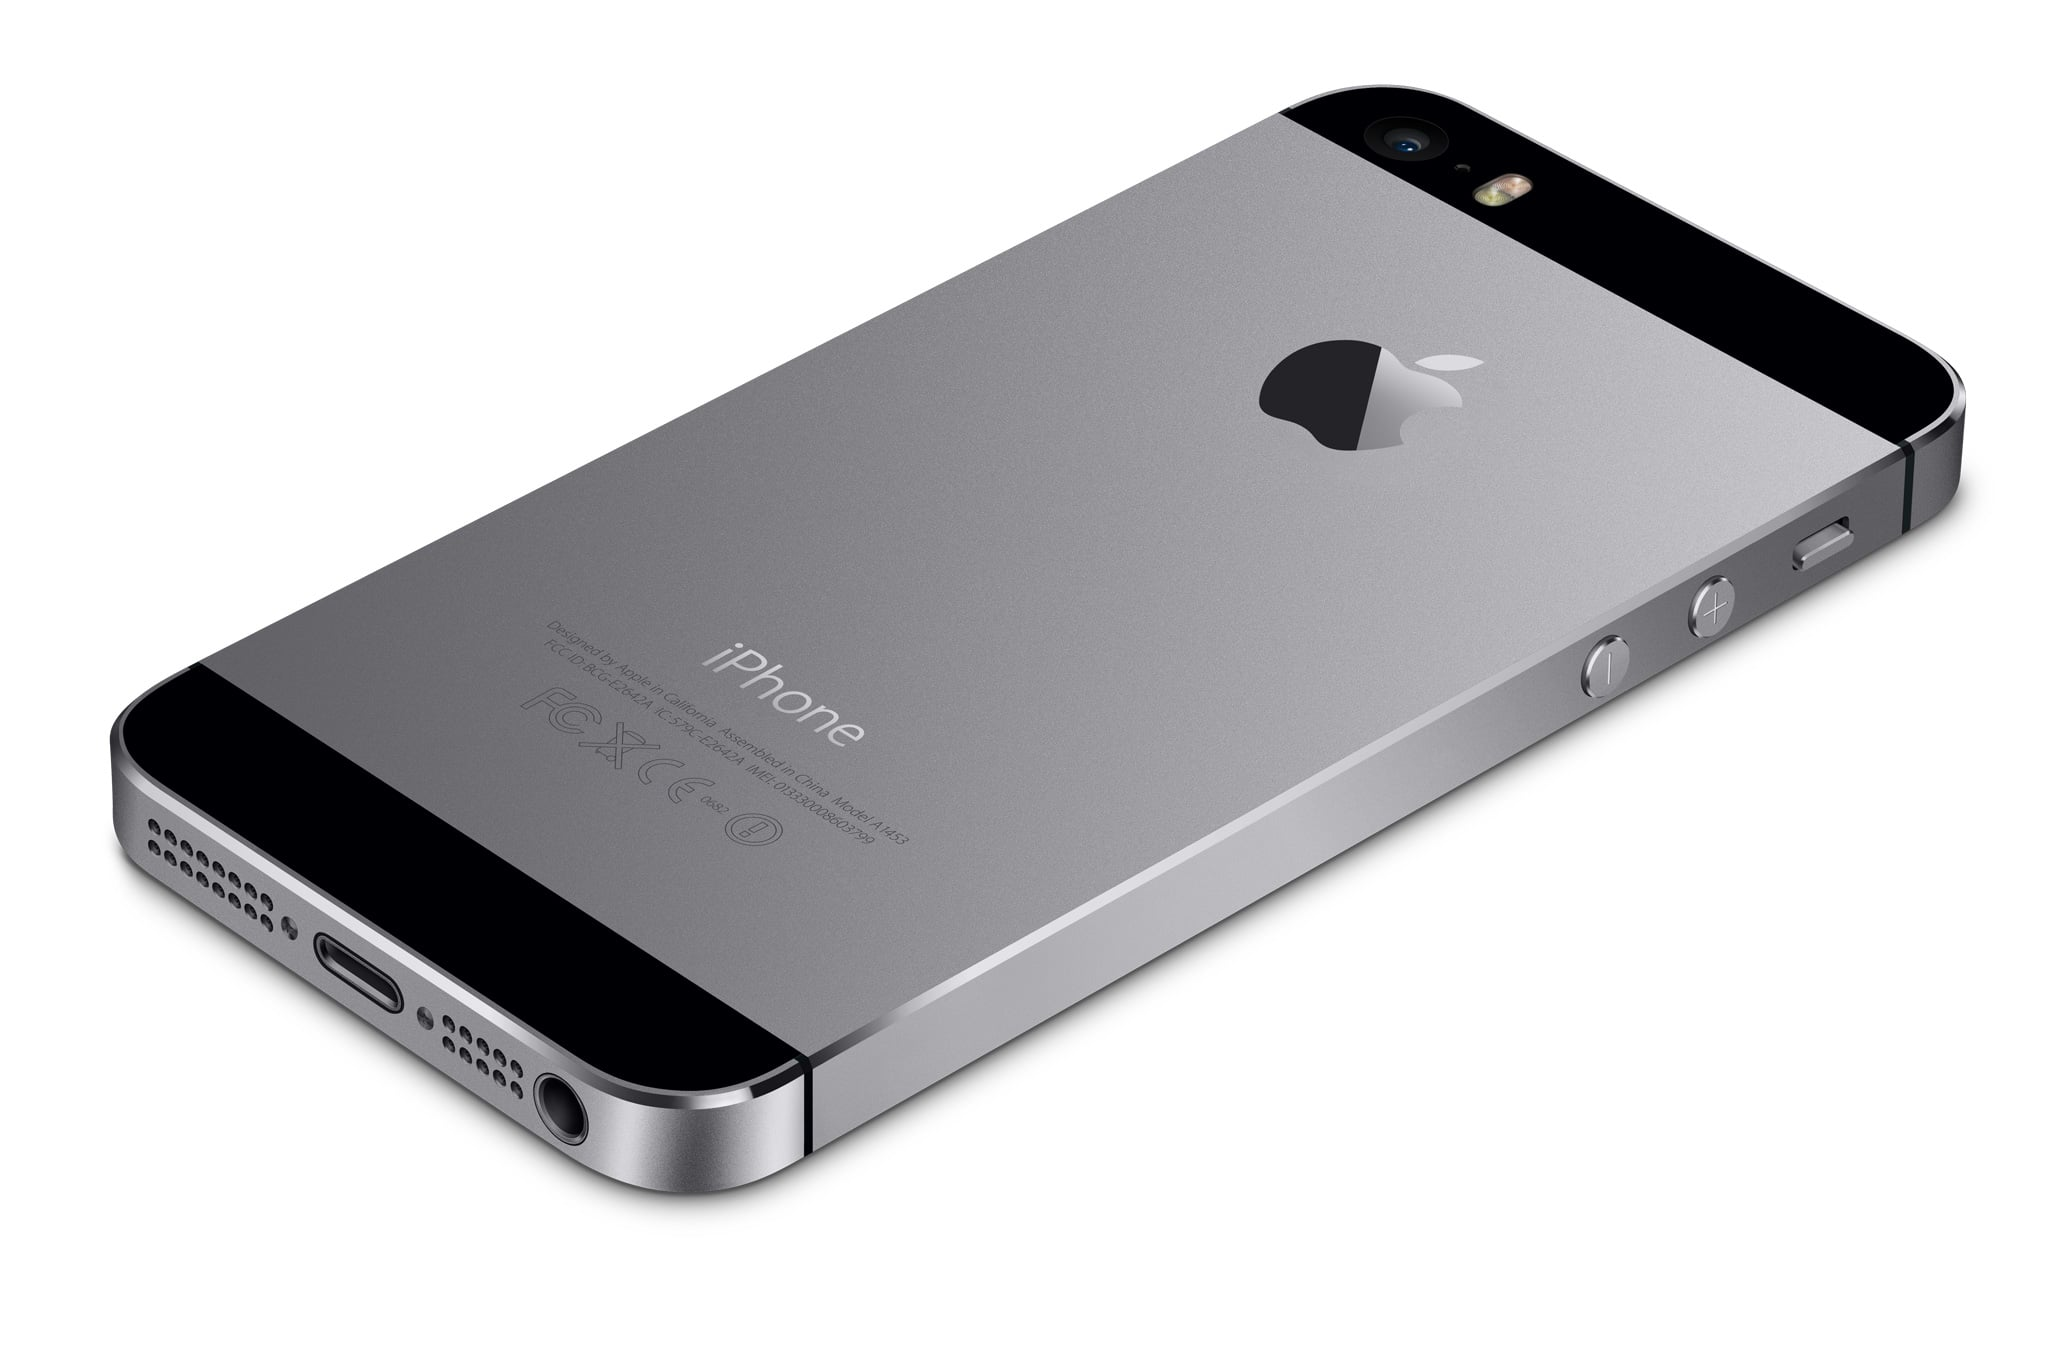 iPhone 5s cinza espacial de costas